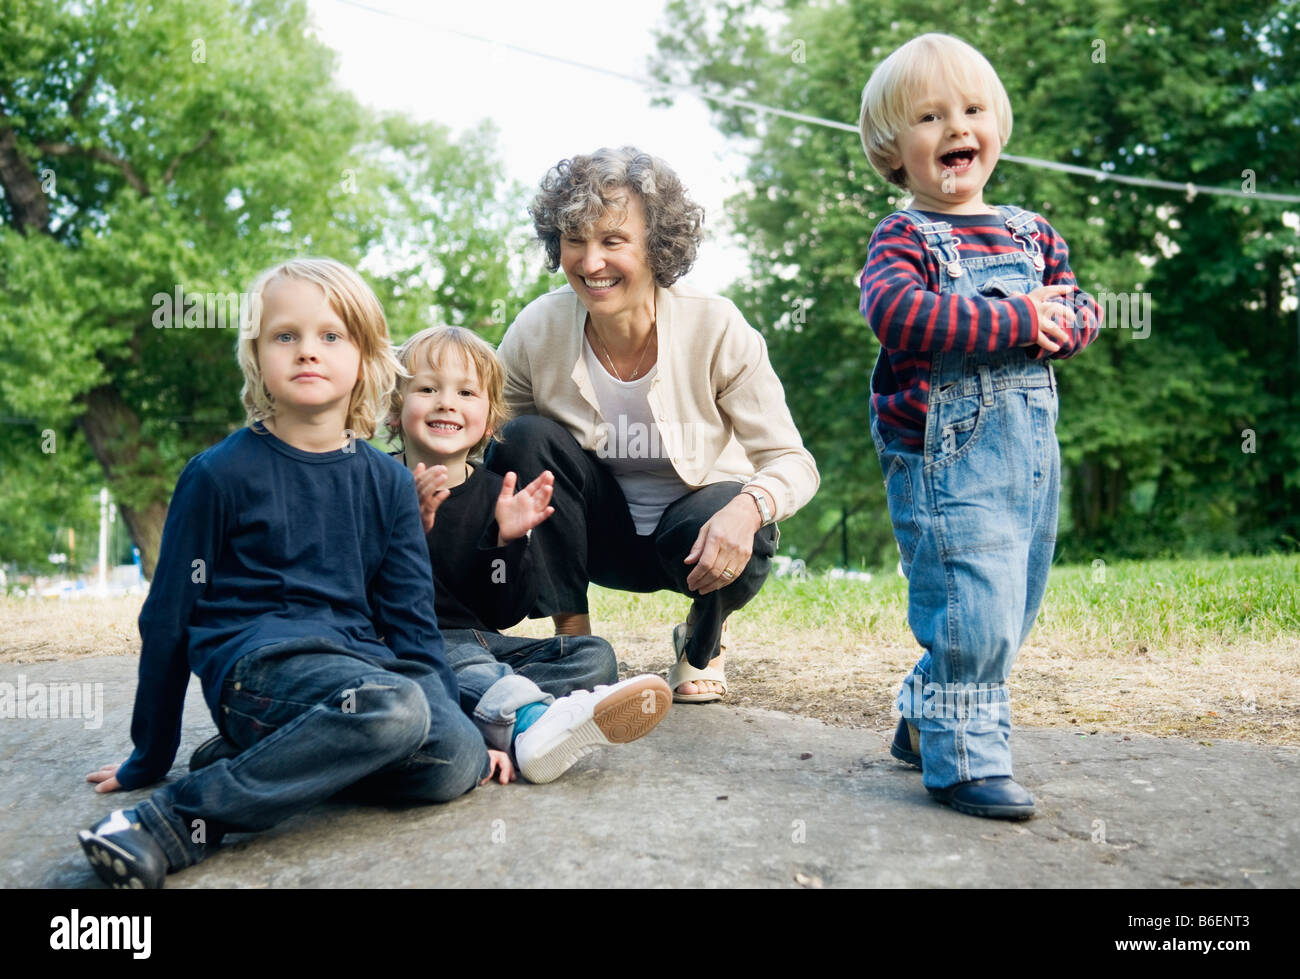 Woman with children - Stock Image